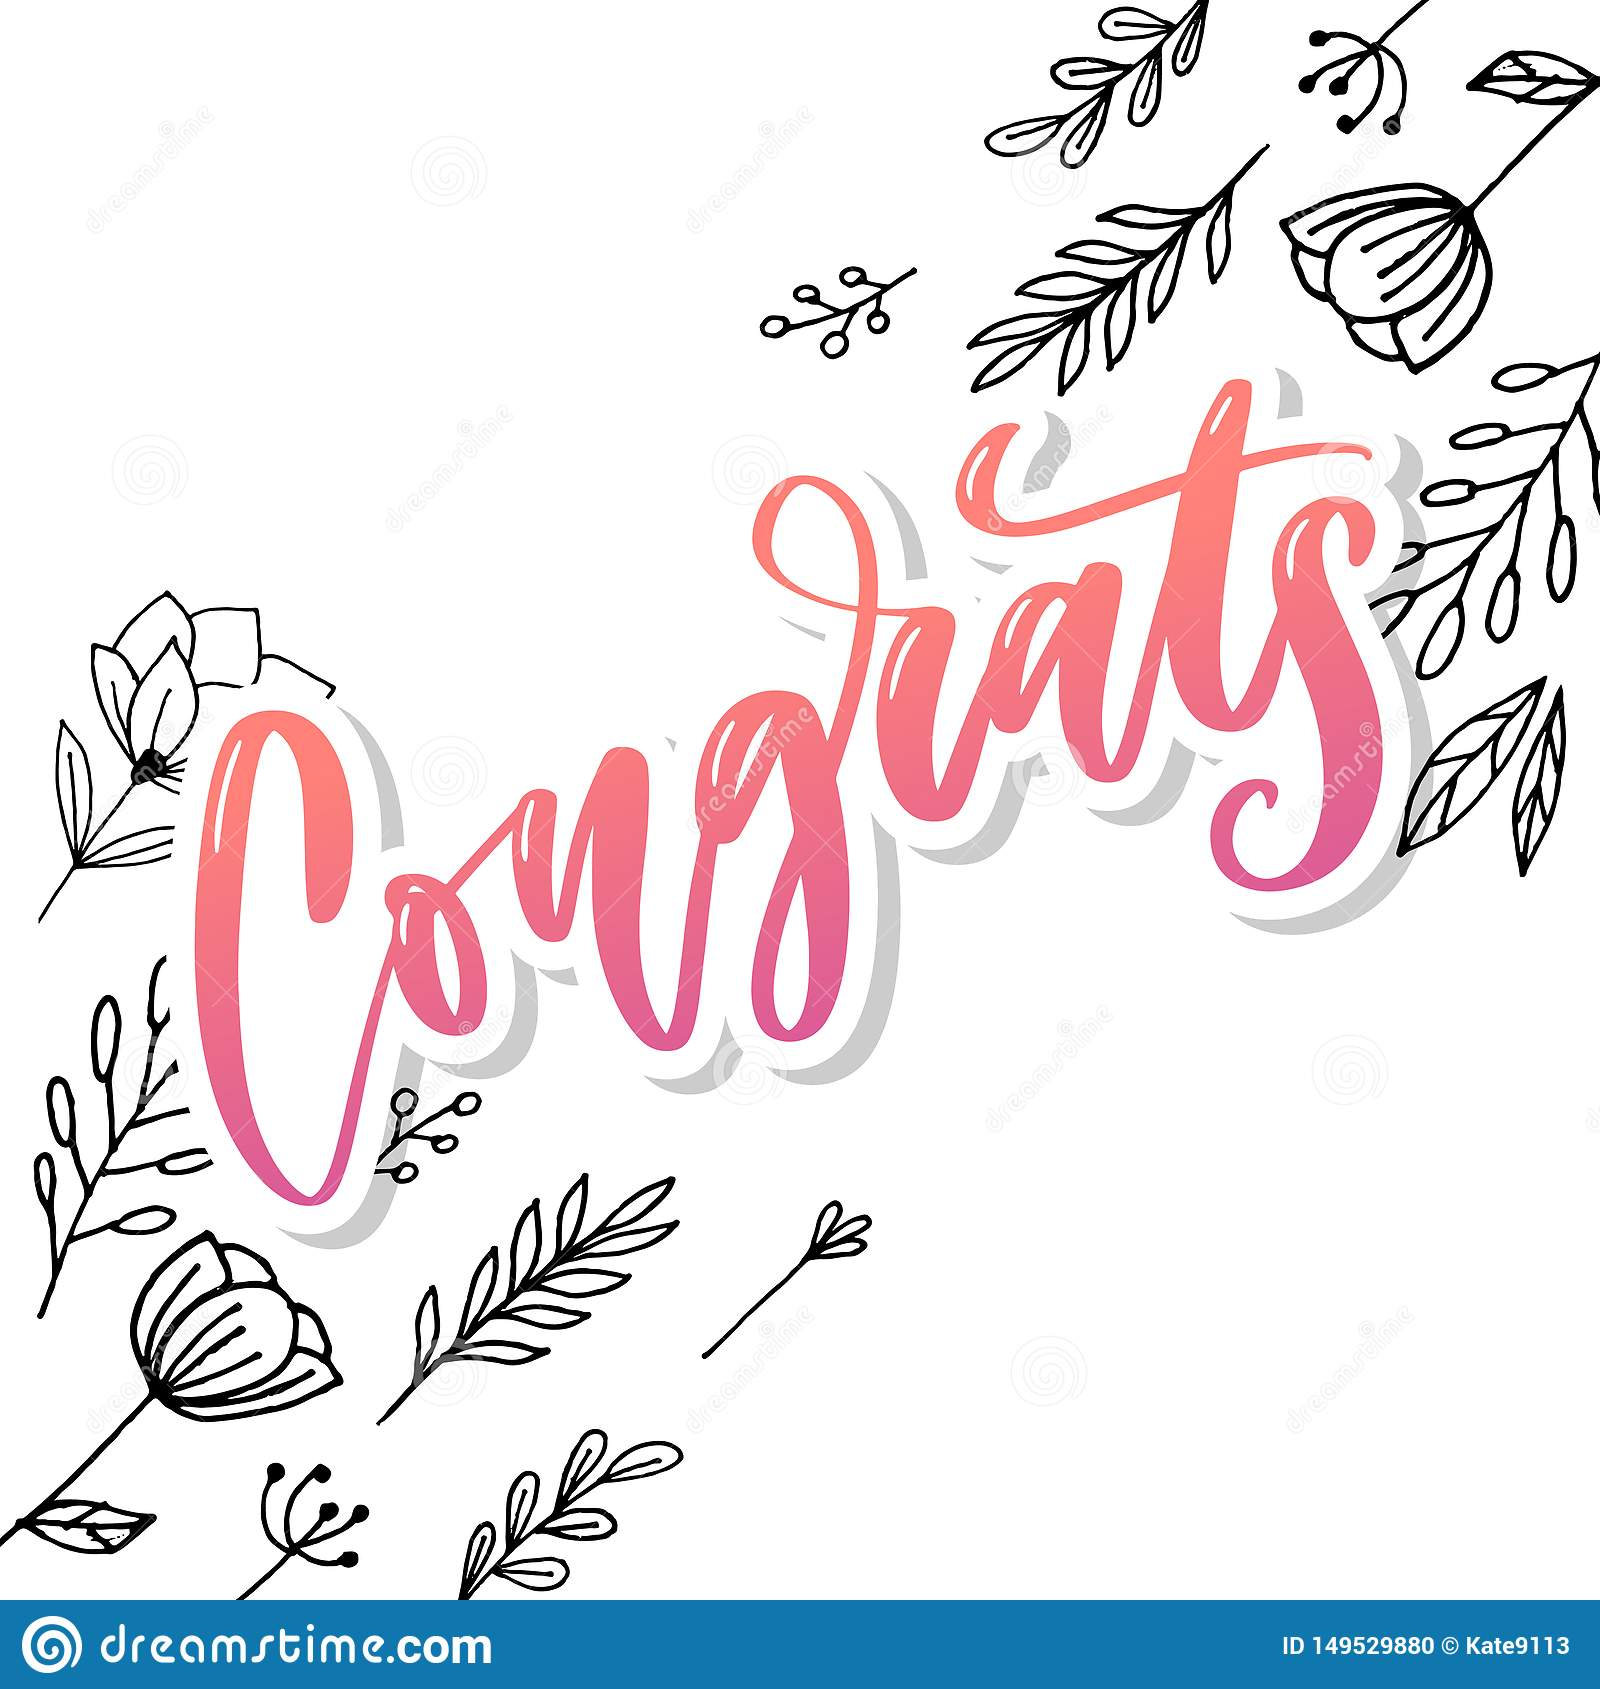 graphic relating to Congratulations Card Printable known as Congrats Hand Created Lettering For Congratulations Card